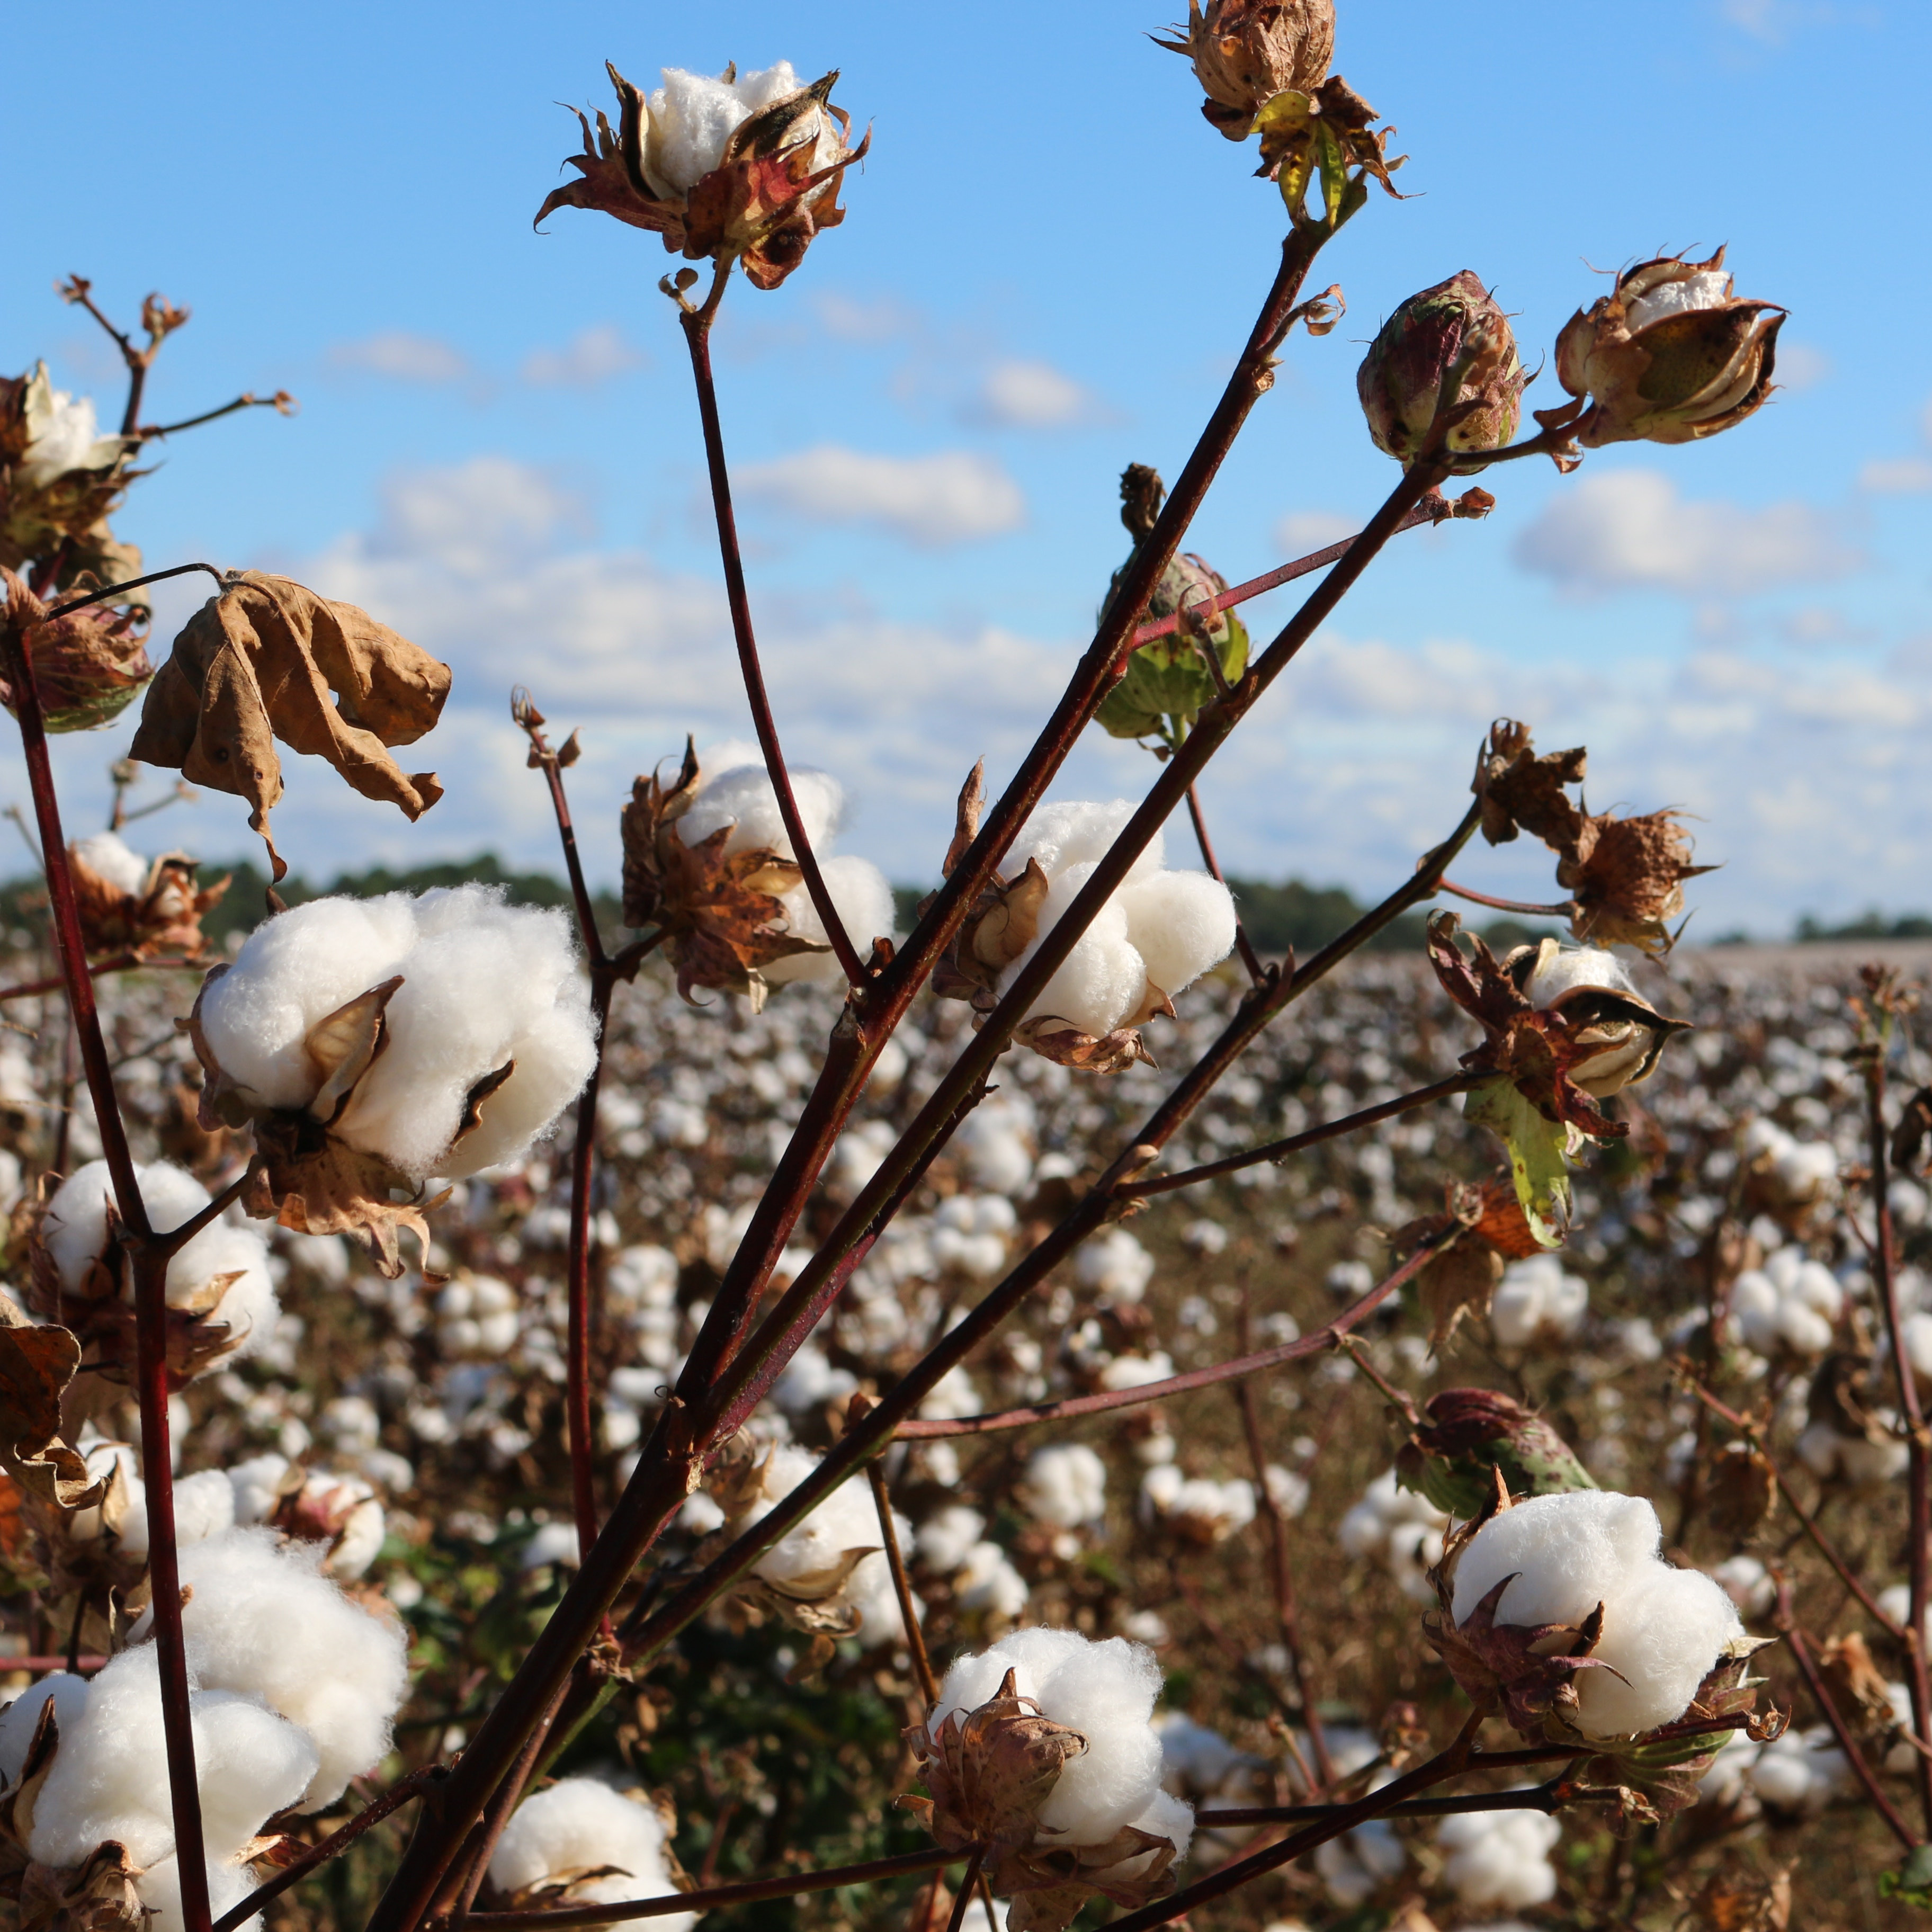 Finding solutions to distress among cotton farming communities